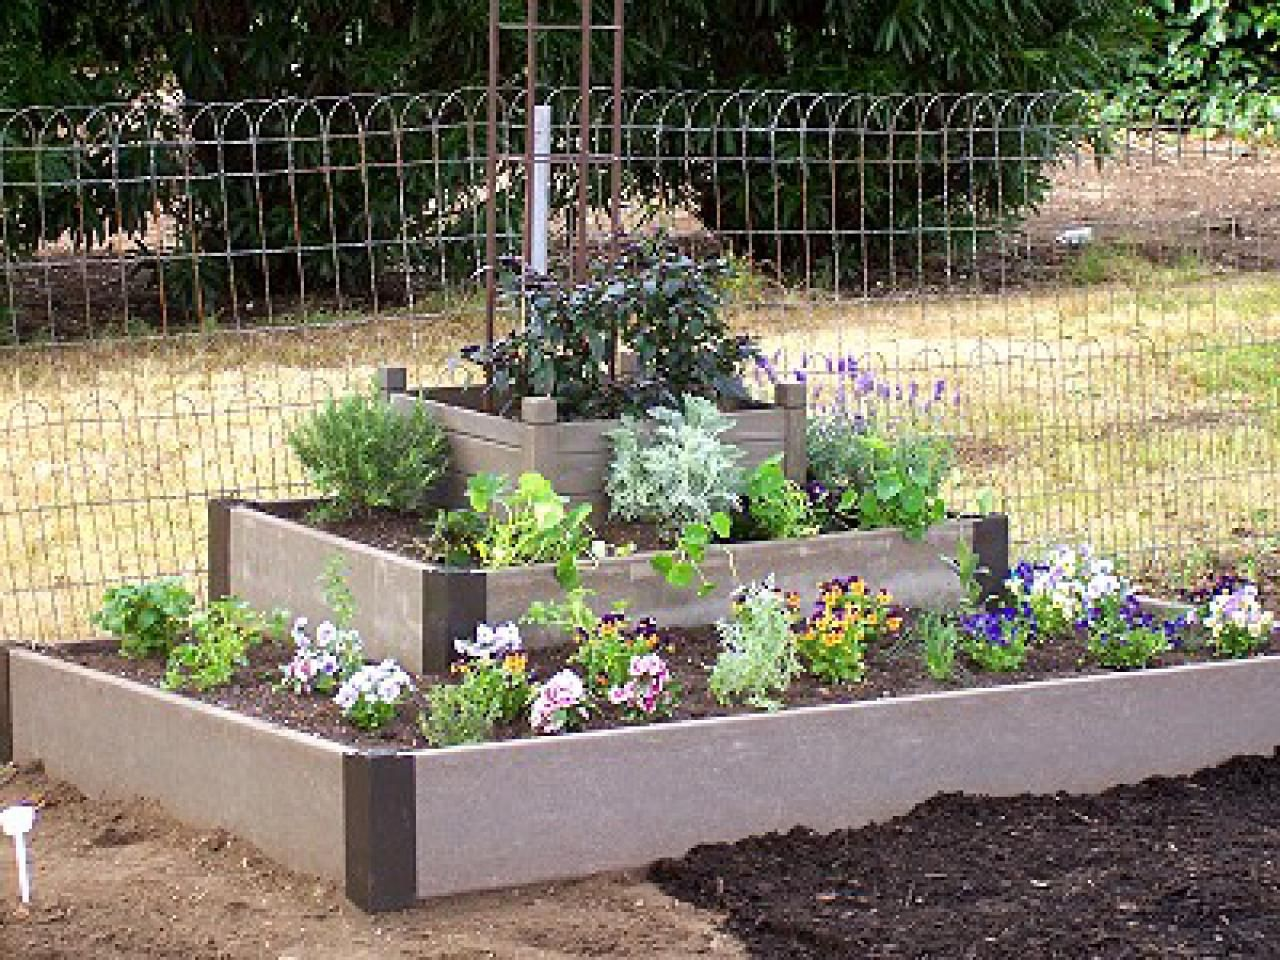 ddfbbed69a06647984188b0b0f57a1a0 - Why Do Gardeners Use Raised Beds